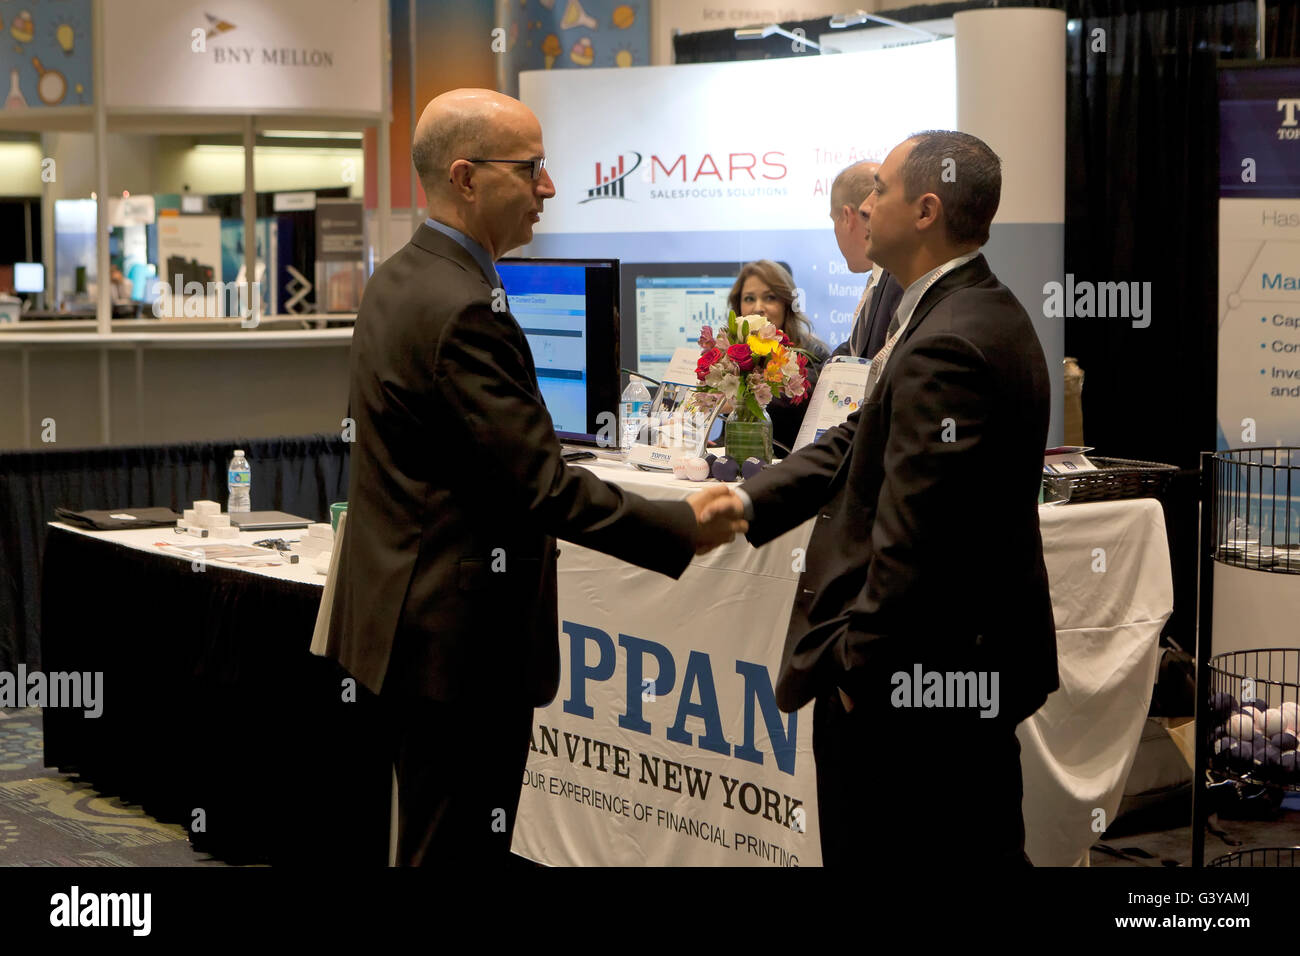 Businessmen shaking hands at an business expo exhibit - Washington, DC USA - Stock Image